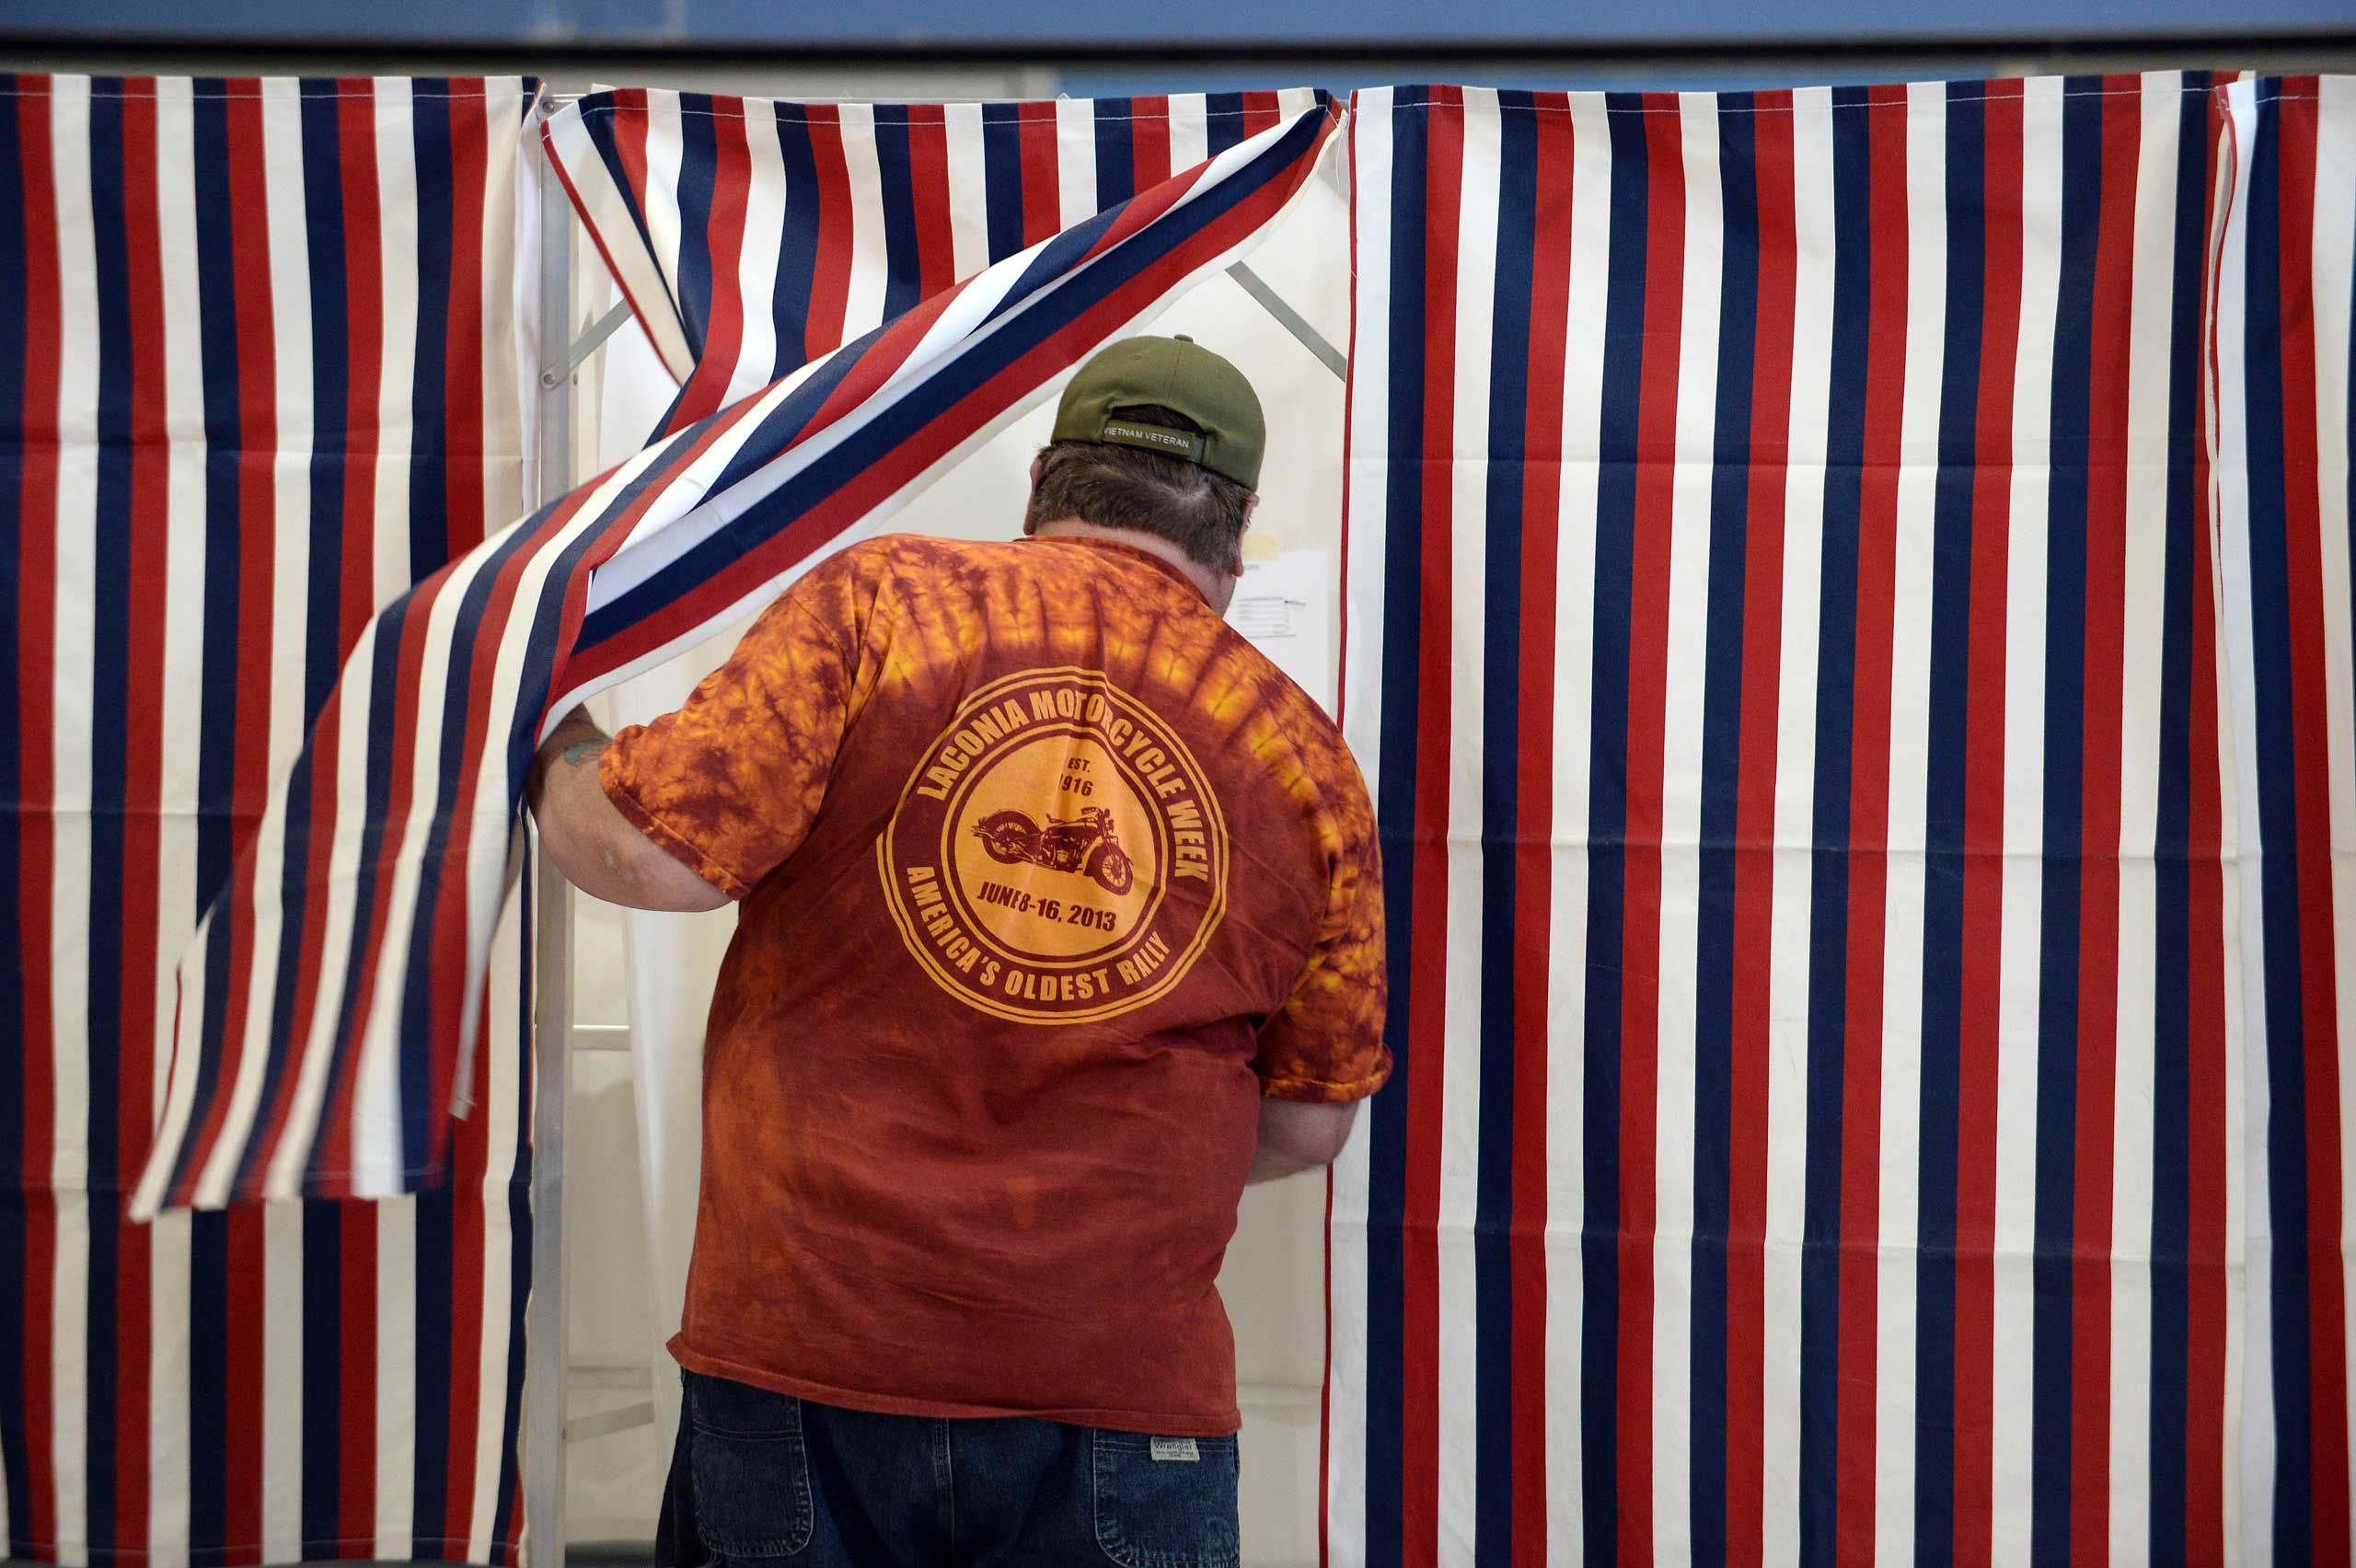 A voter enters the voting booth at Bishop Leo E. O'Neil Youth Center in Manchester, N.H. on Nov. 4, 2014.